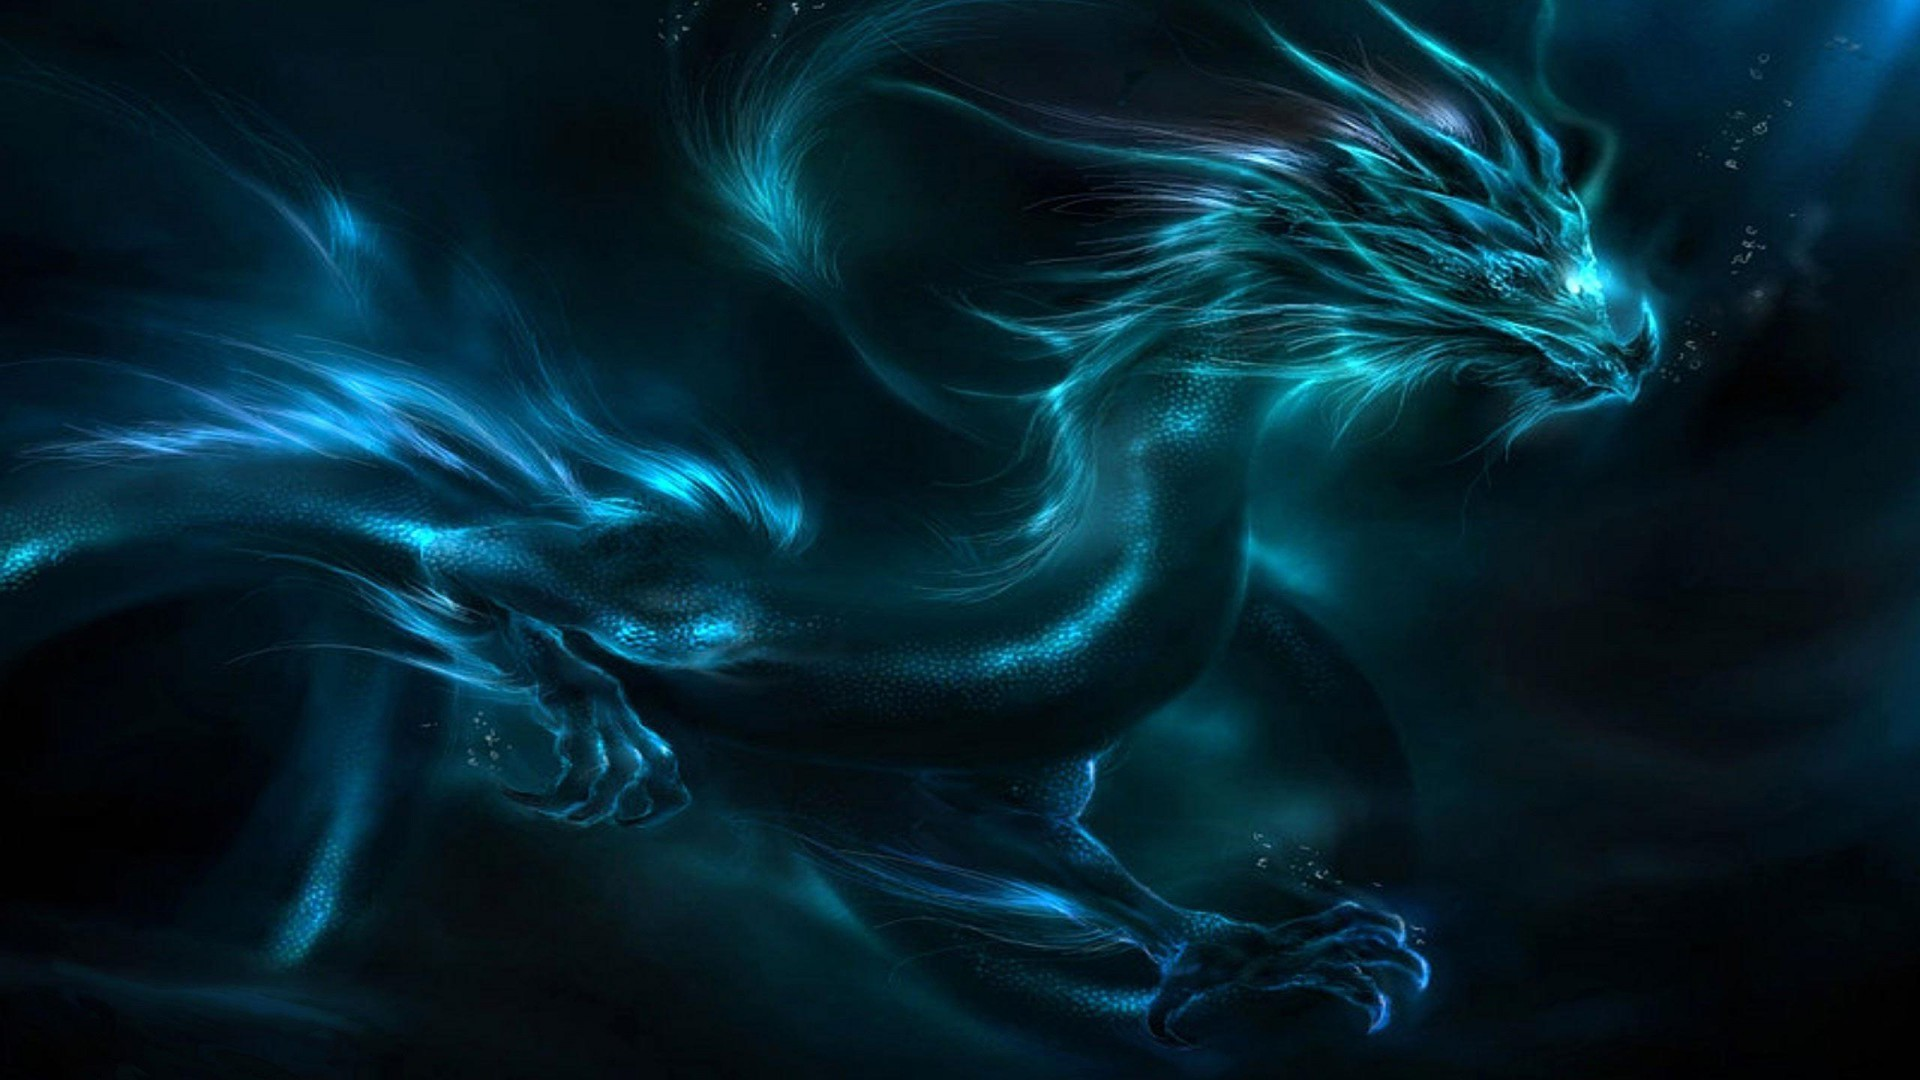 1920x1080 Full Fantasy Blue Dragon Wallpaper  Full HD Wallpapers